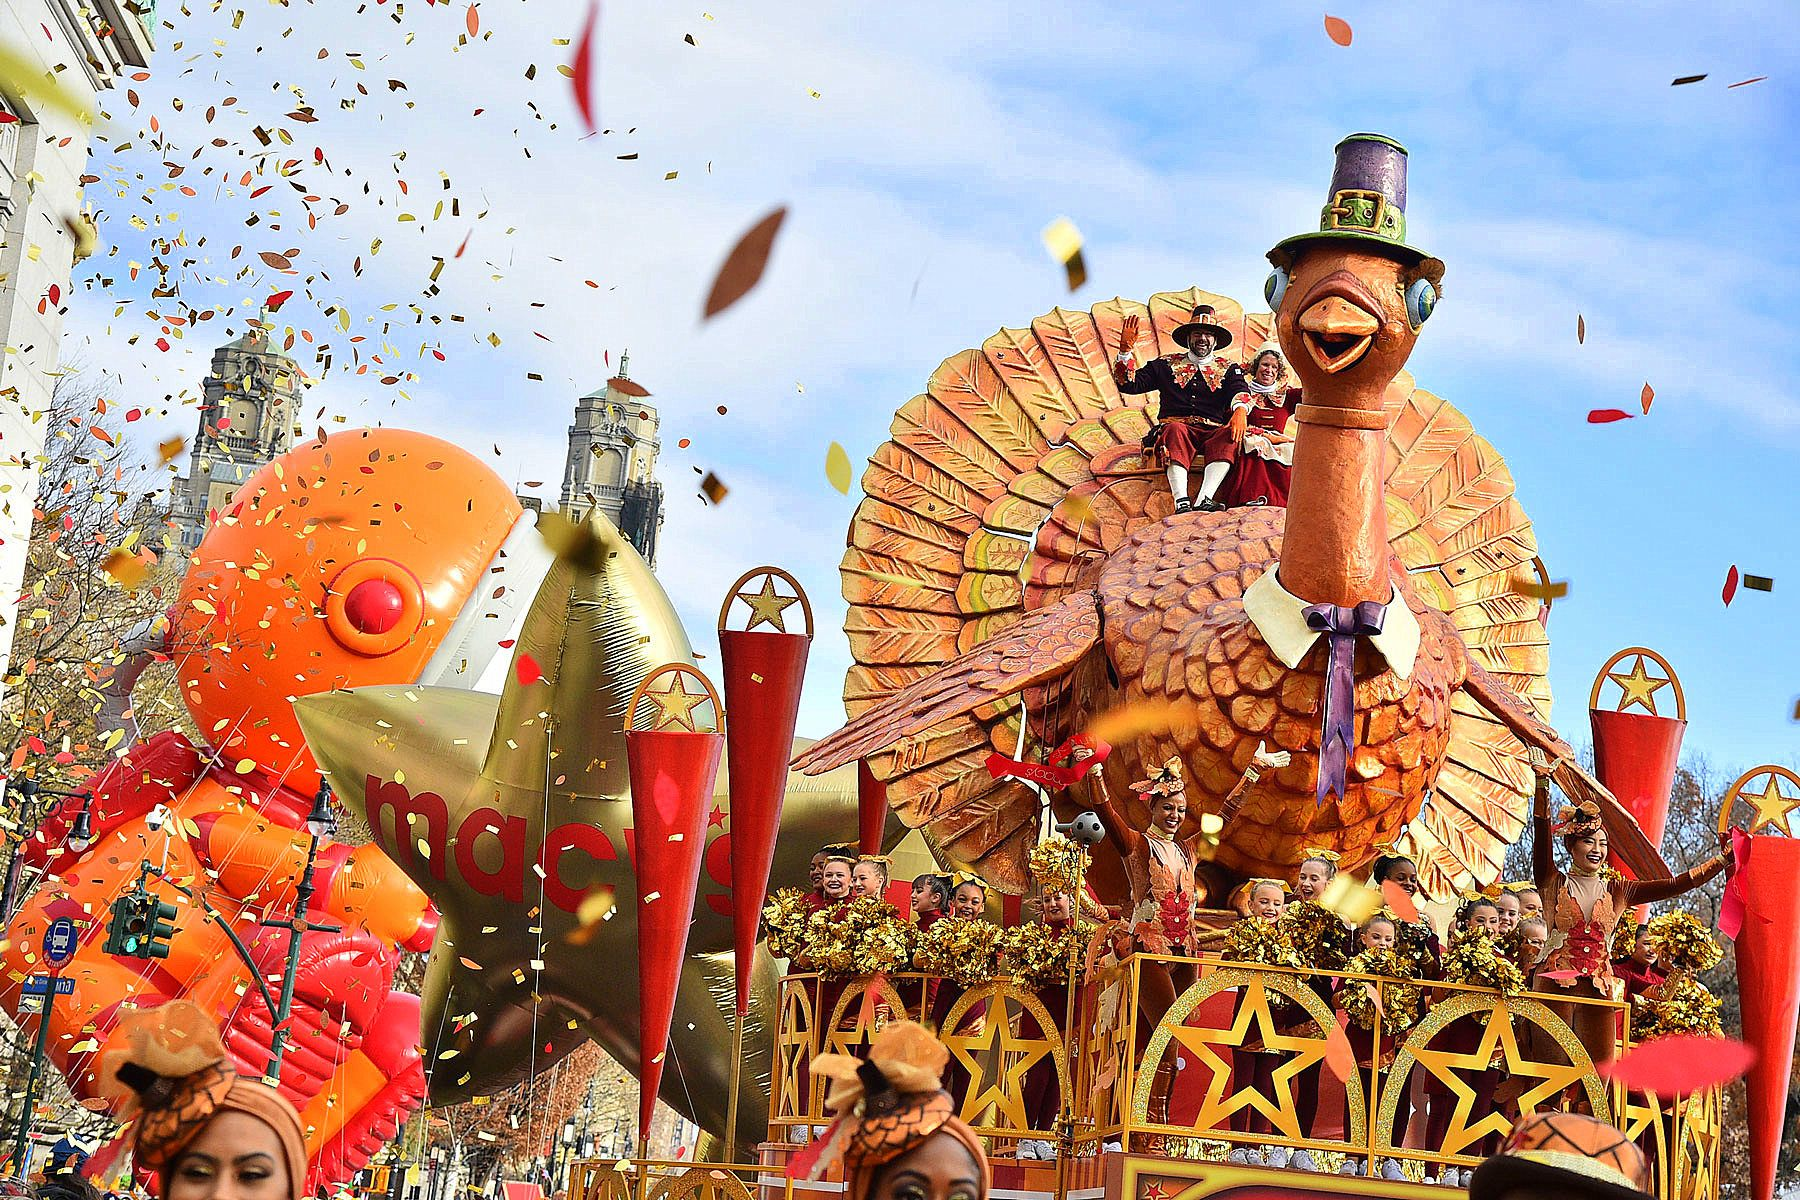 The Annual Macy S Thanksgiving Day Parade Is Still On And Scheduled To Move F In 2020 Macy S Thanksgiving Day Parade Macy S Thanksgiving Day Parade Thanksgiving Parade